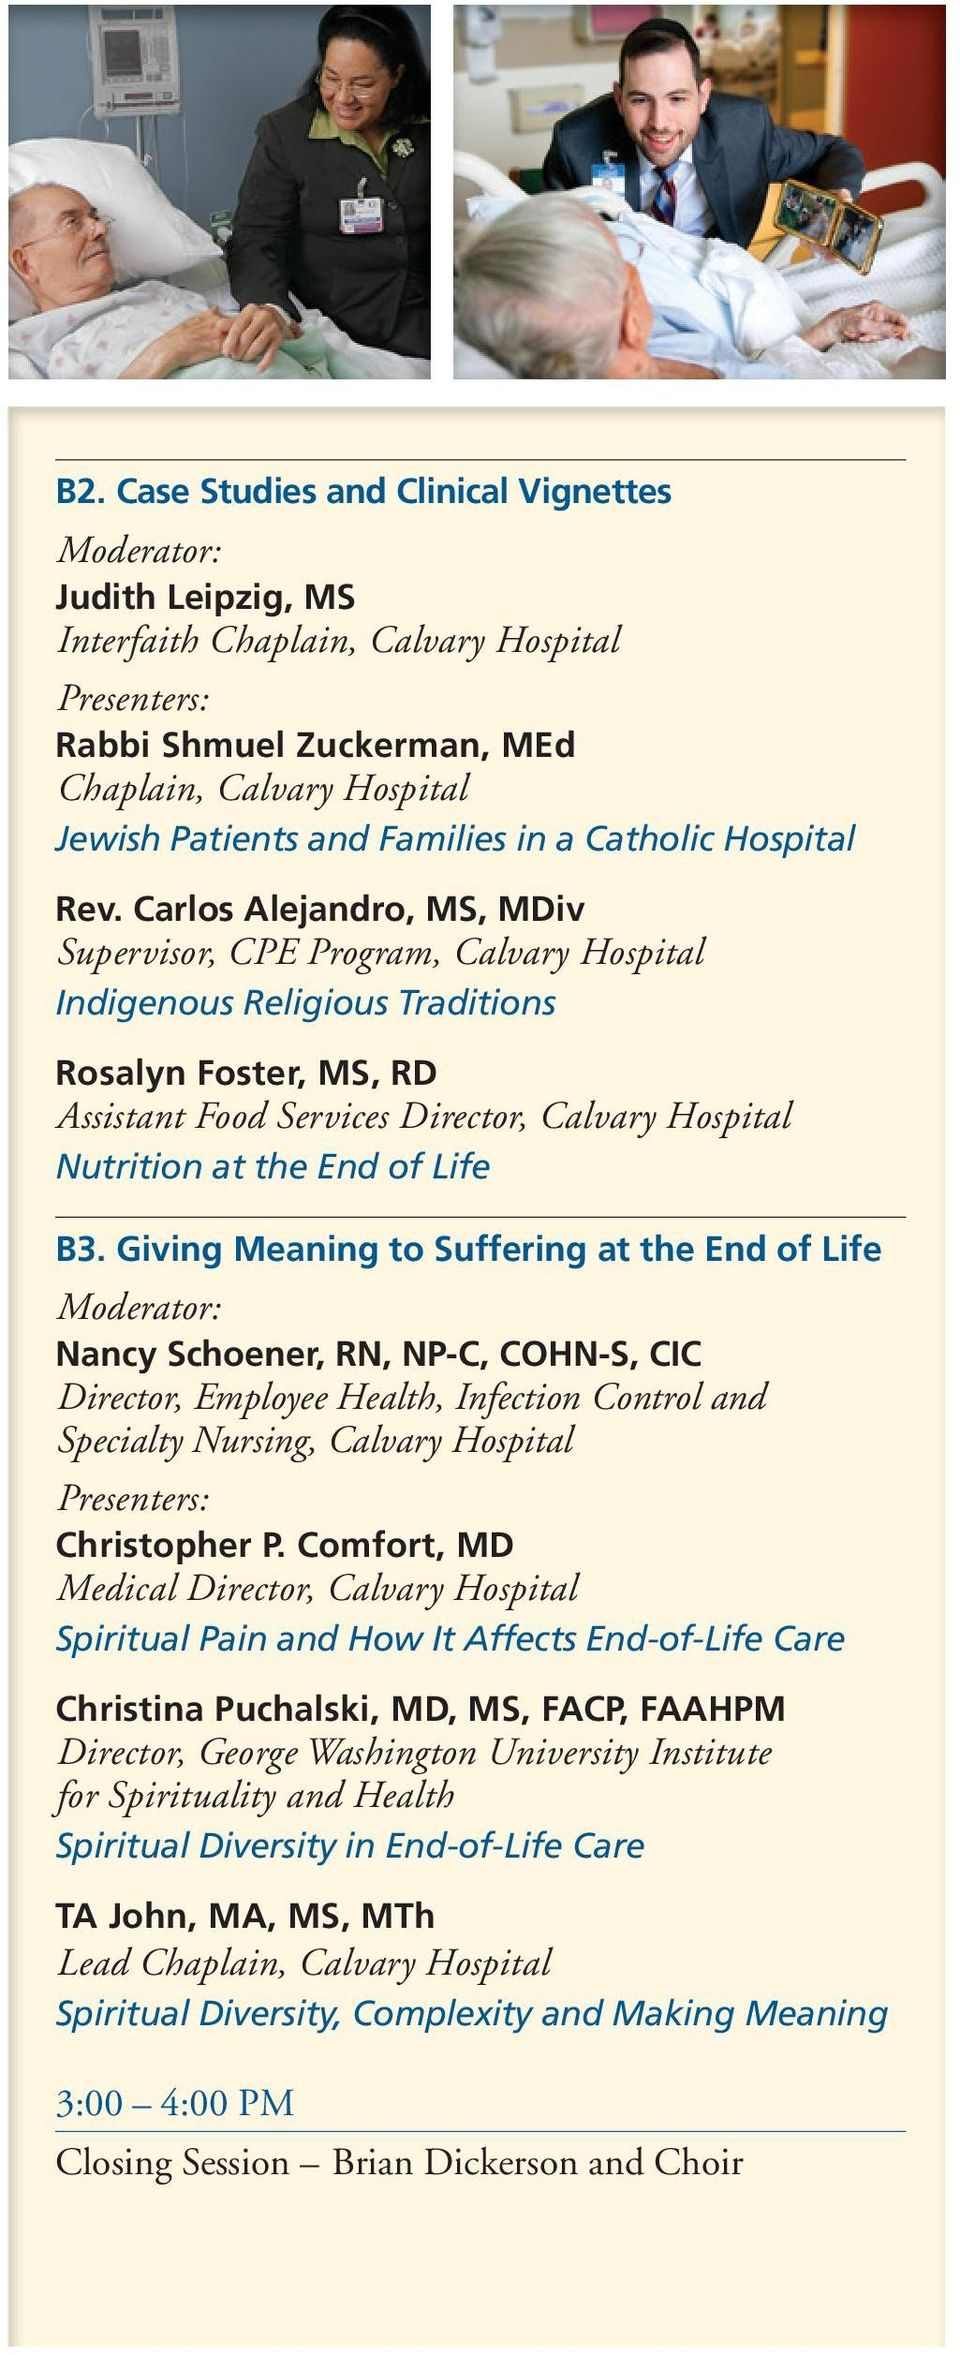 Life B3. Giving Meaning to Suffering at the End of Life Nancy Schoener, RN, NP-C, COHN-S, CIC Director, Employee Health, Infection Control and Specialty Nursing, Calvary Hospital Christopher P.